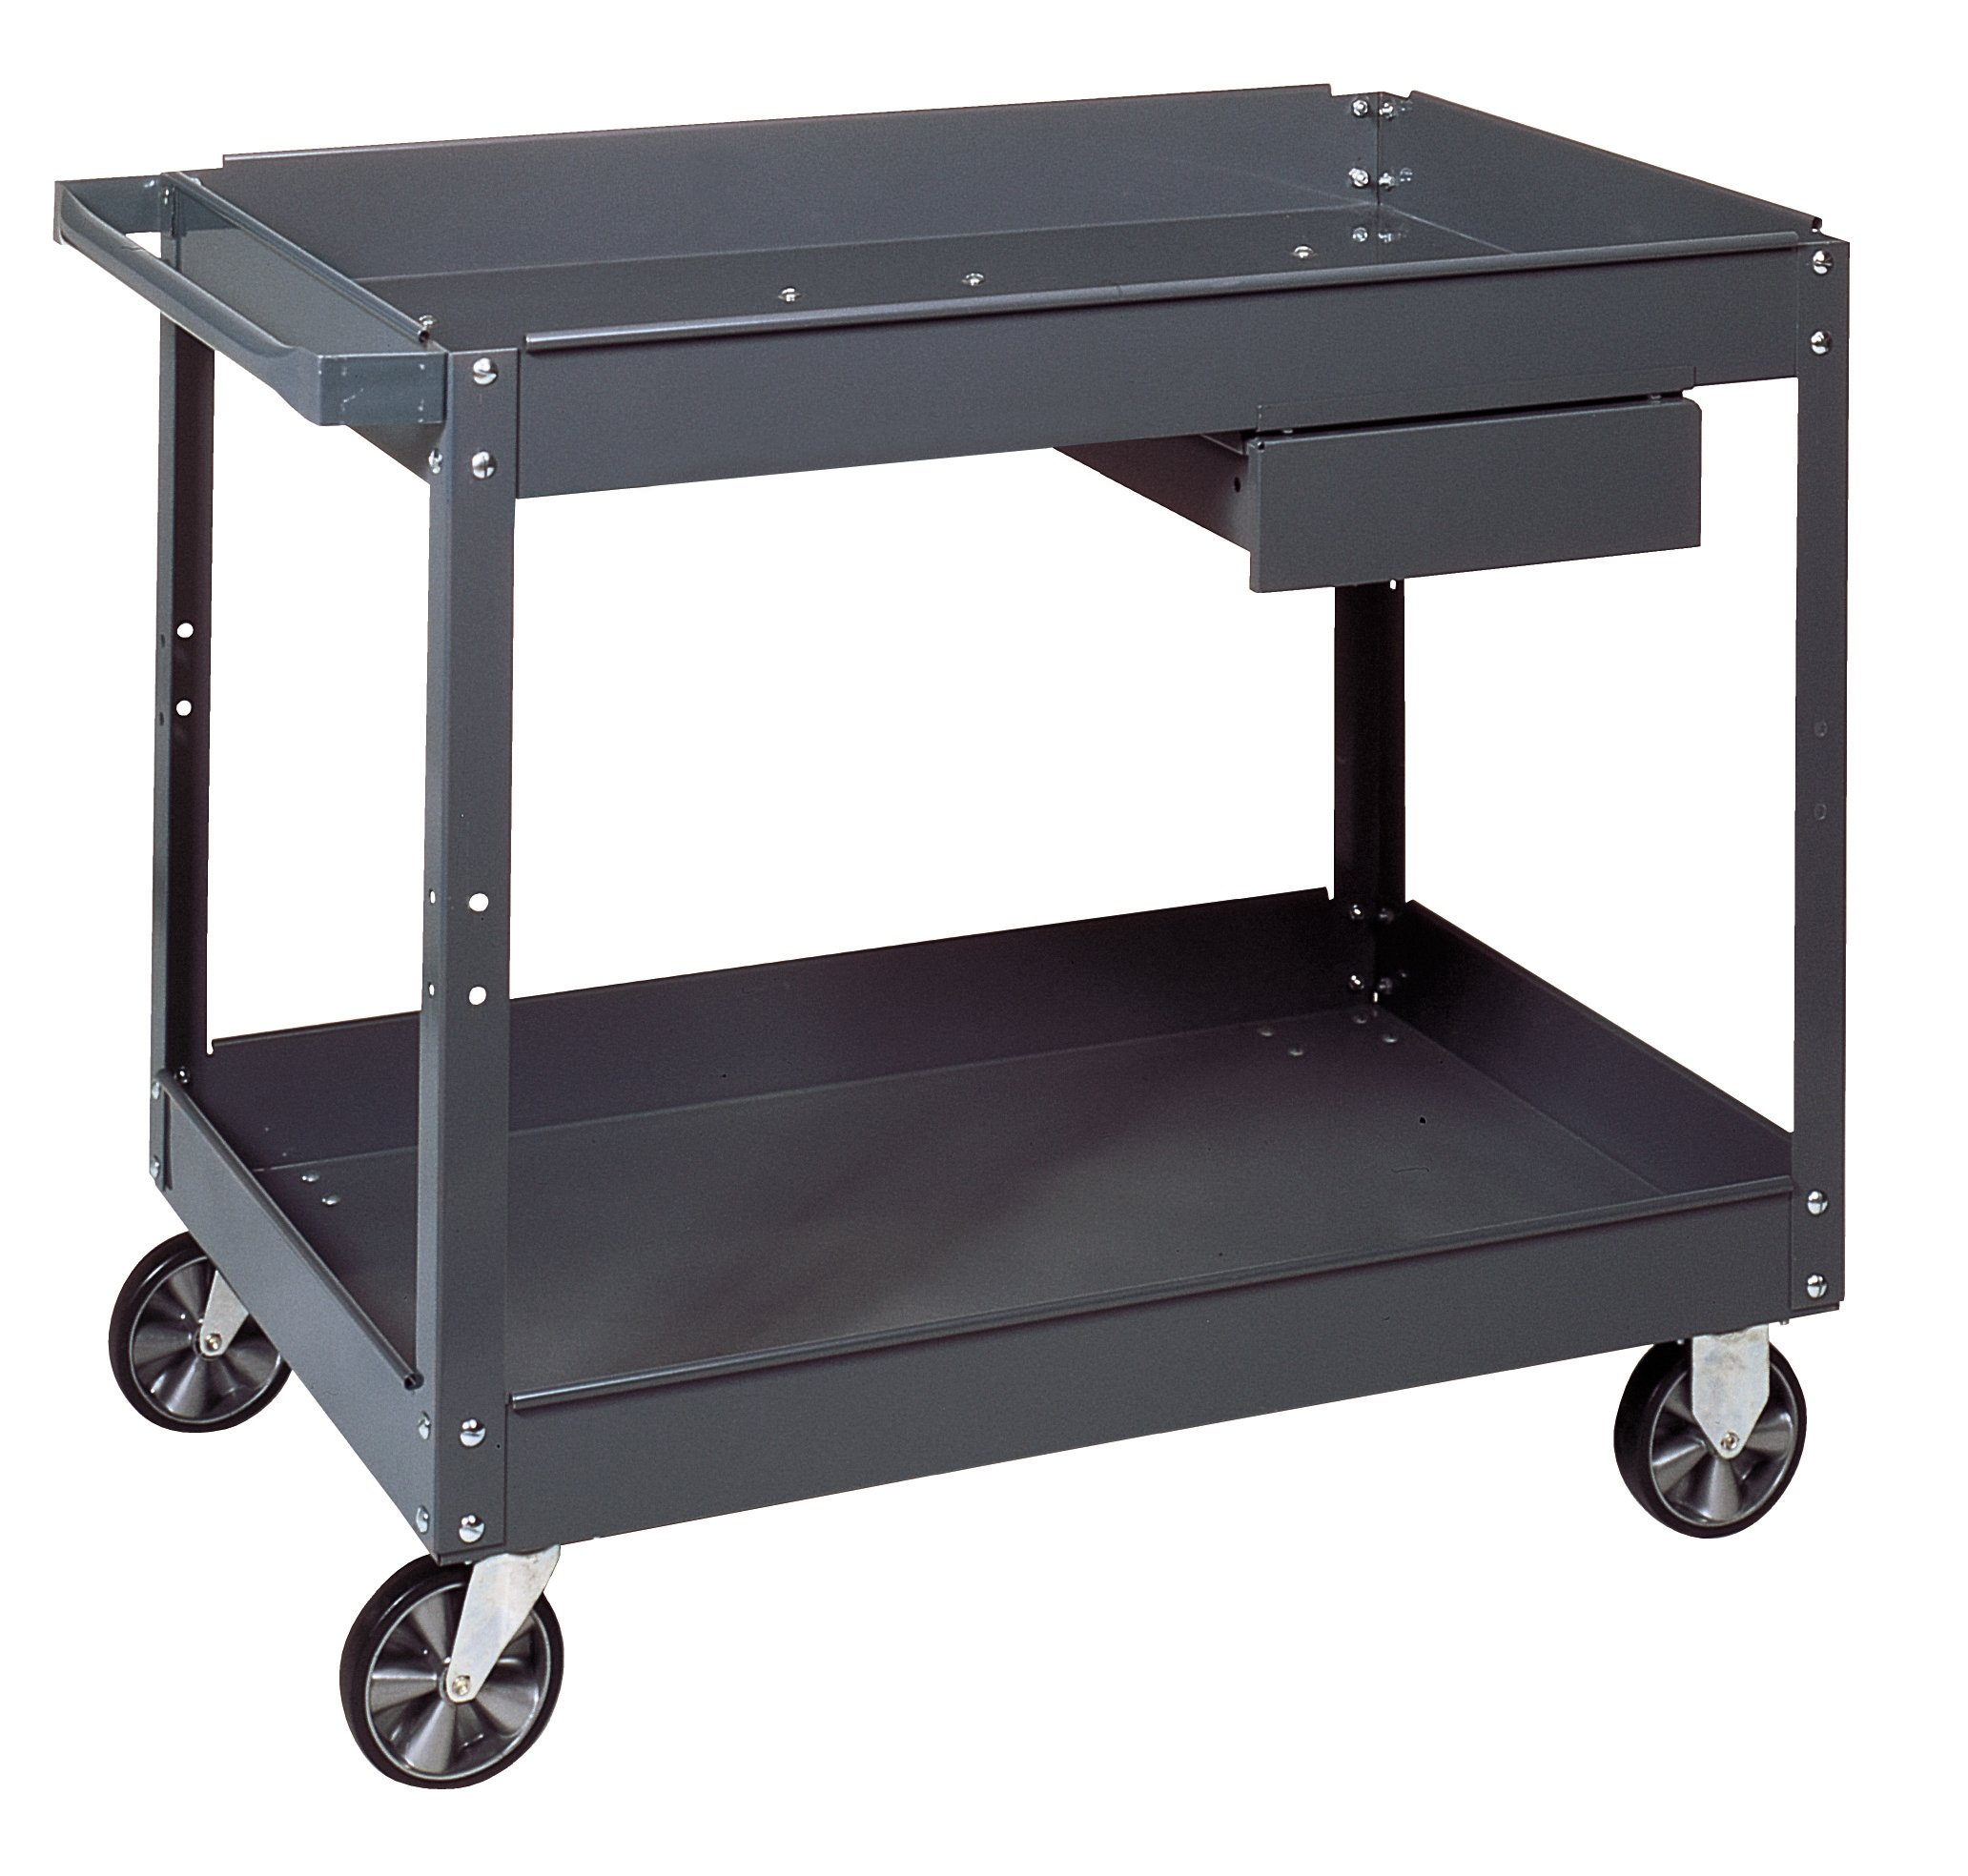 Edsal SC2116 Steel Commercial Service Cart with 1 Drawer, Material Handler, Powder Coated Finish, Industrial Gray Color, 500 lb. Capacity, 30'' Length x 16'' Width x 32'' Height, 2 Shelf